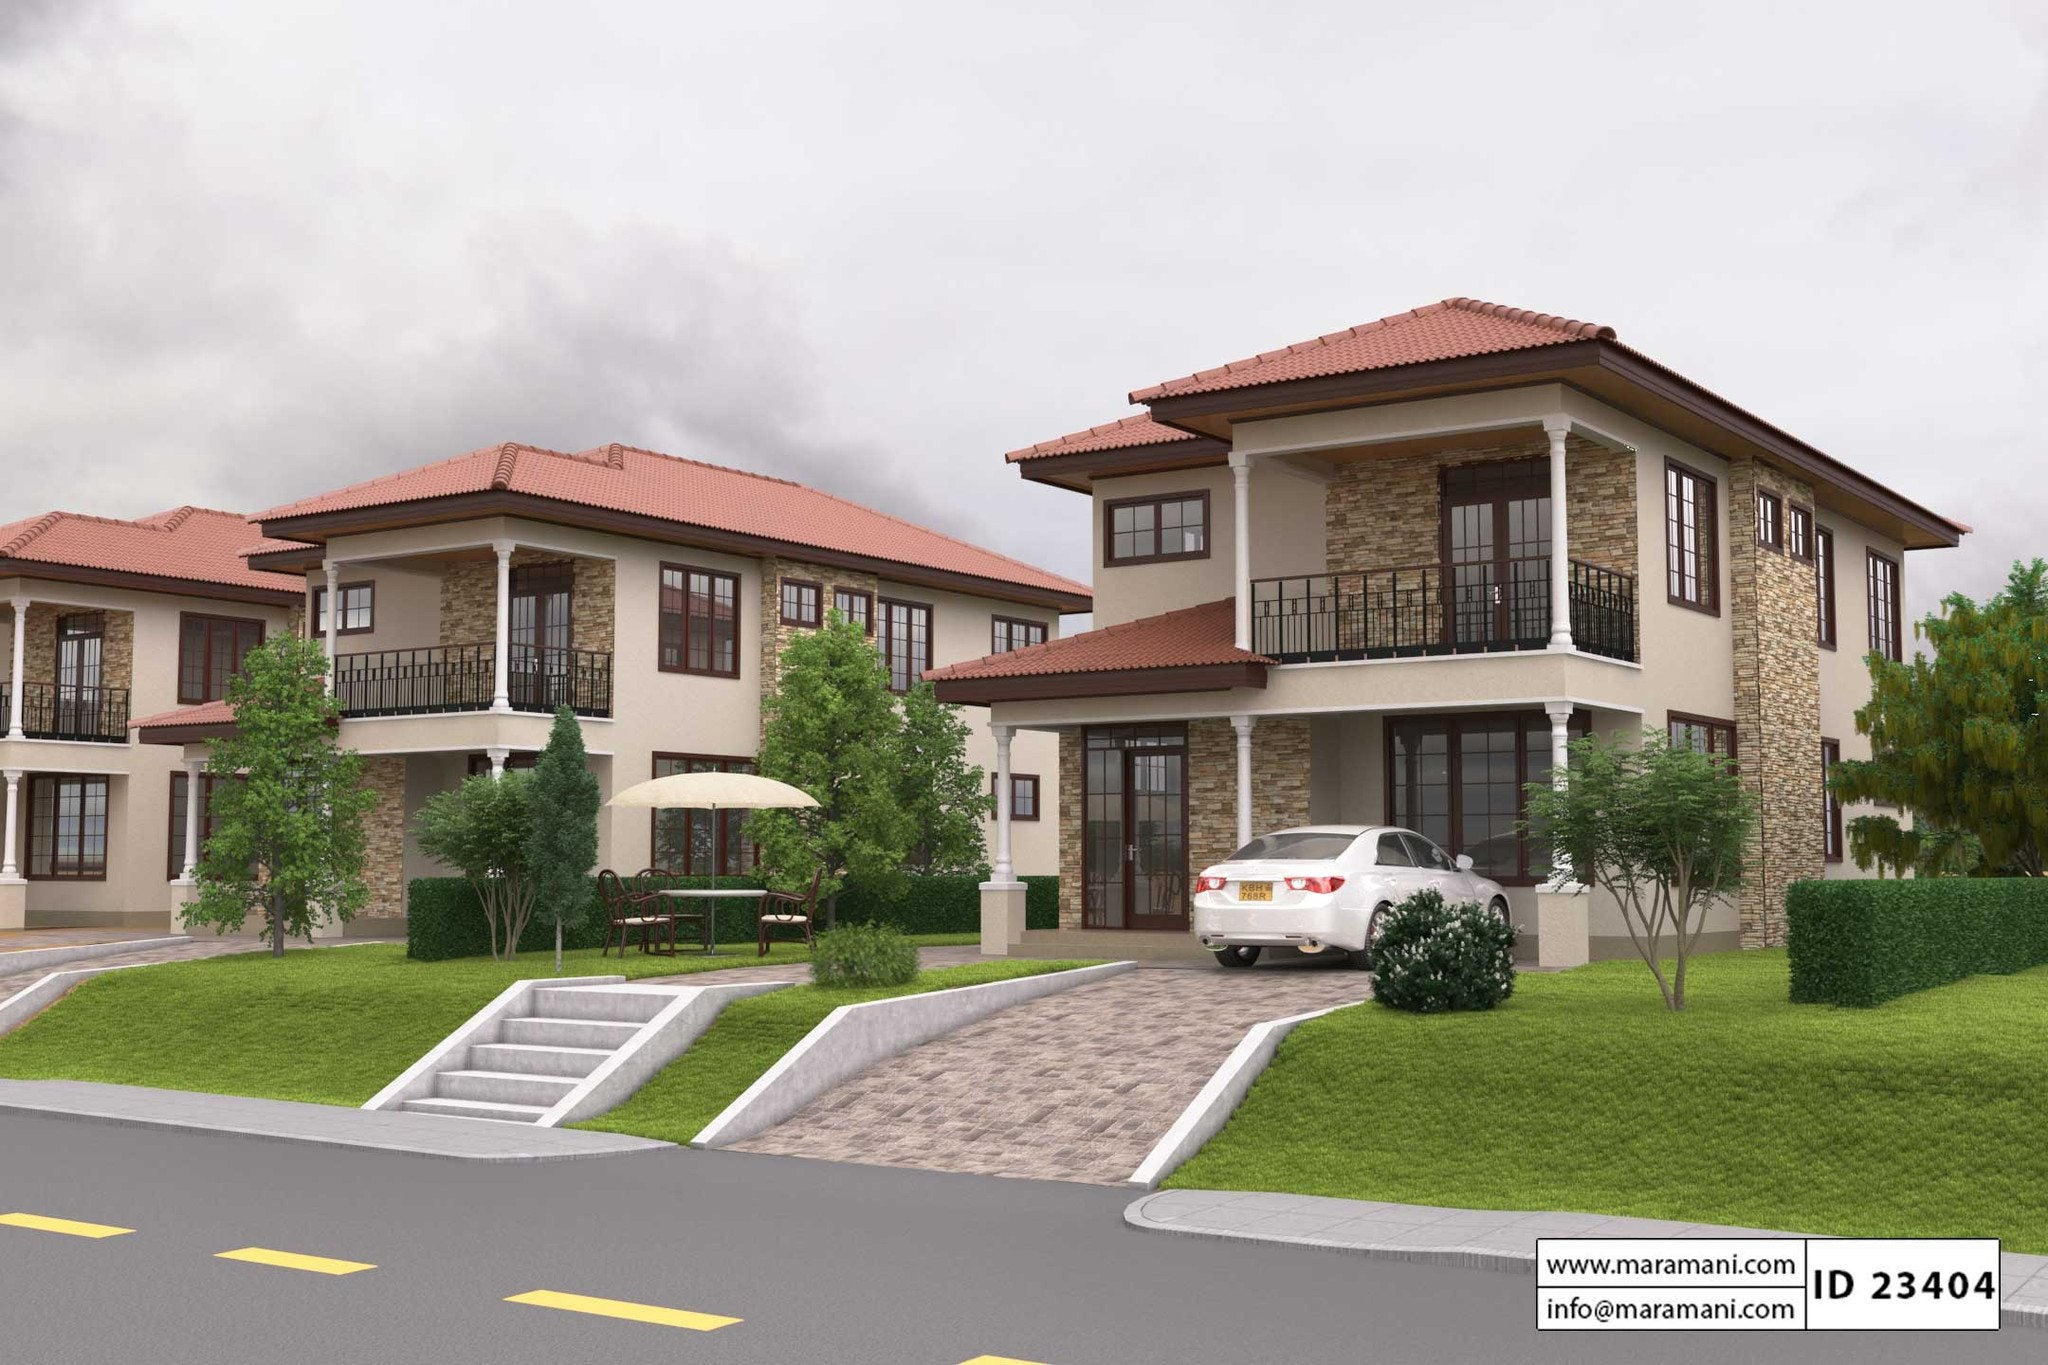 simple three bedroom house plan id 23404 floor plans by maramani - Three Bedroom House